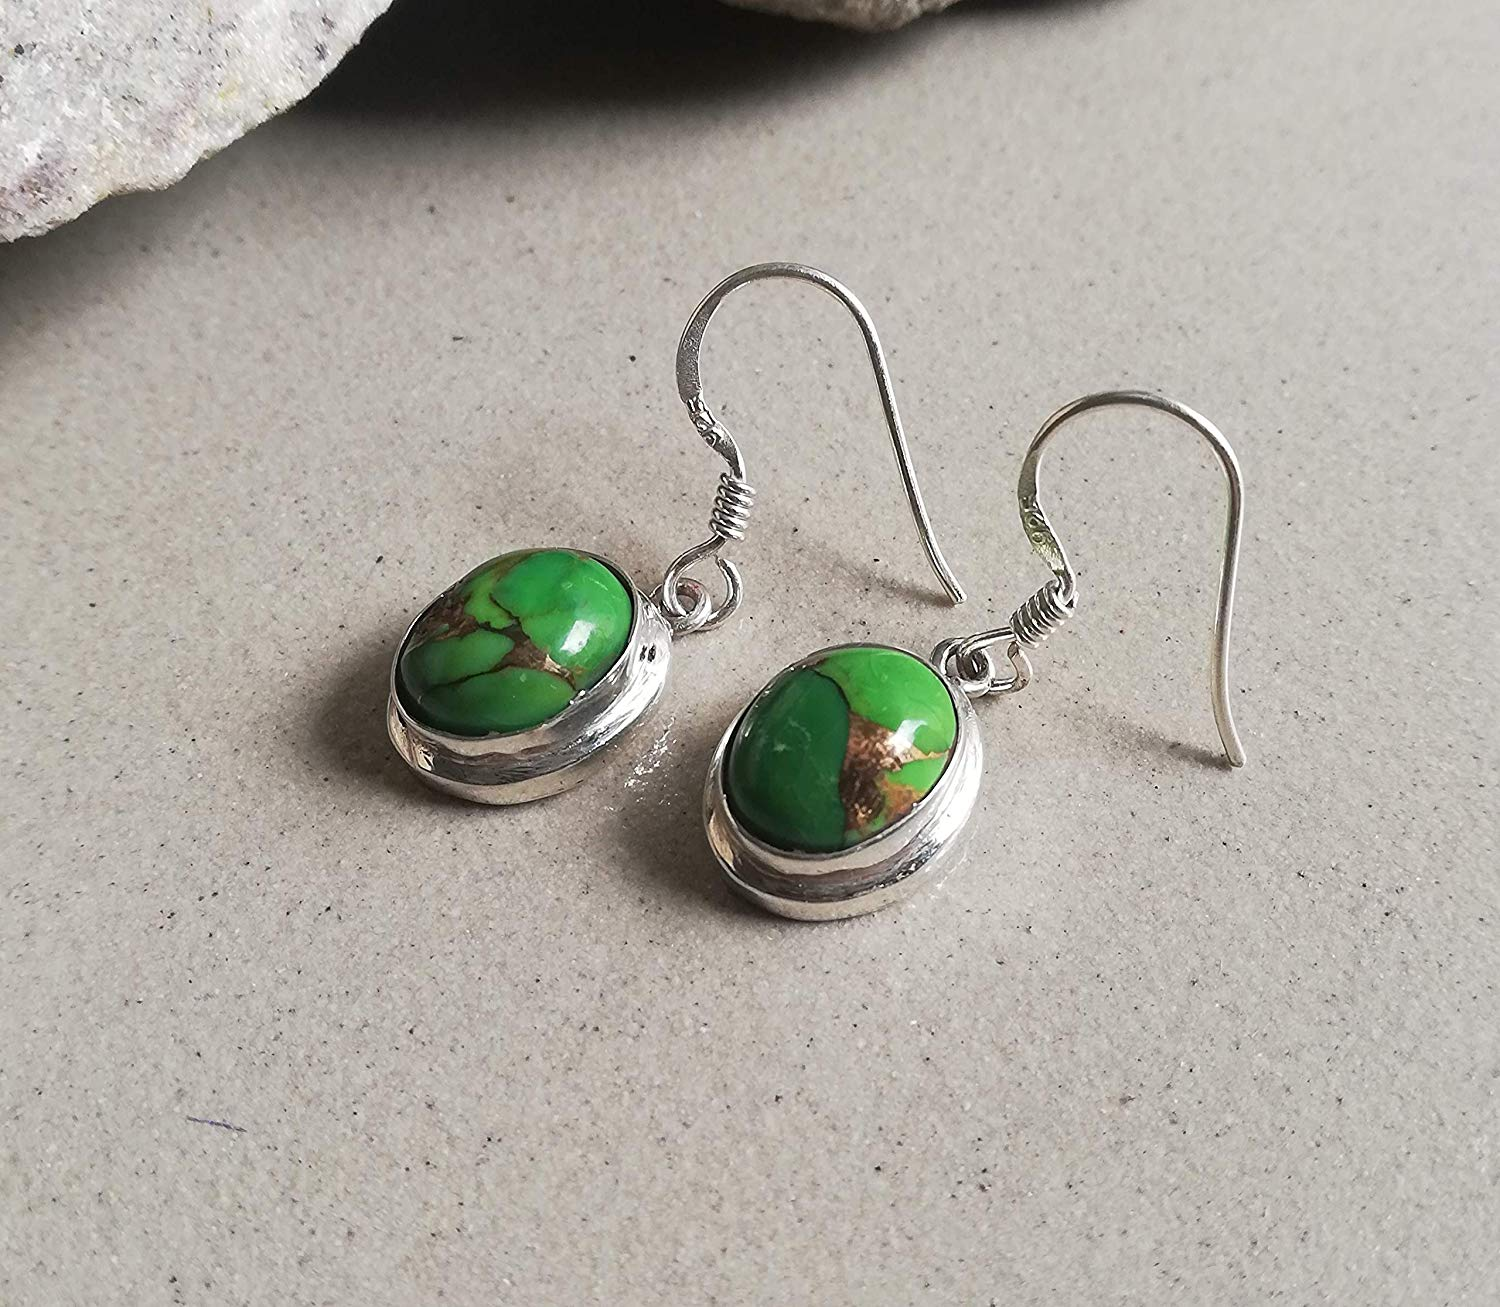 Green Copper Turquoise Earring, 925 Sterling Silver, Unique Piece, Mojave Turquoise Earrings, Dangle Earrings, Vintage Style Earrings, Boho Bride Earrings, Hypoallergenic Earrings, Classic Earrings